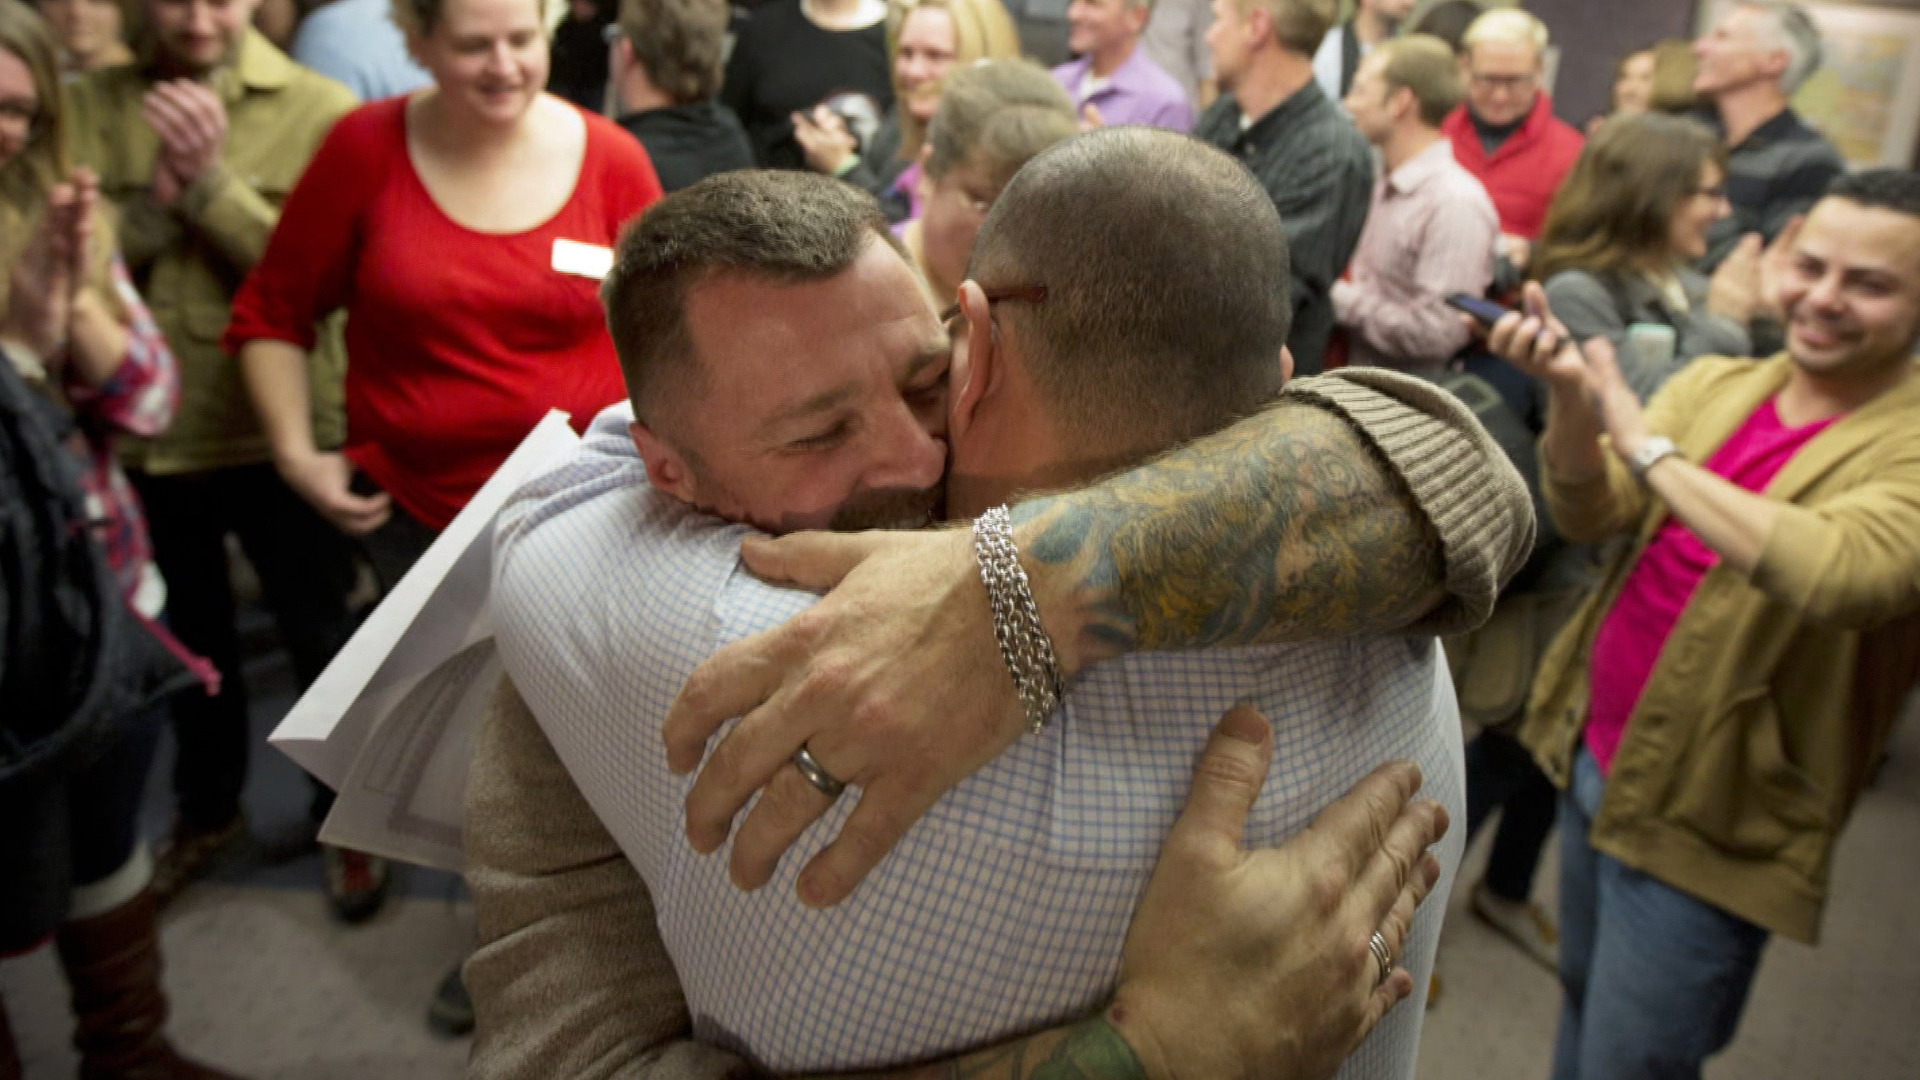 Oklahoma gay marriage ban unconstitutional